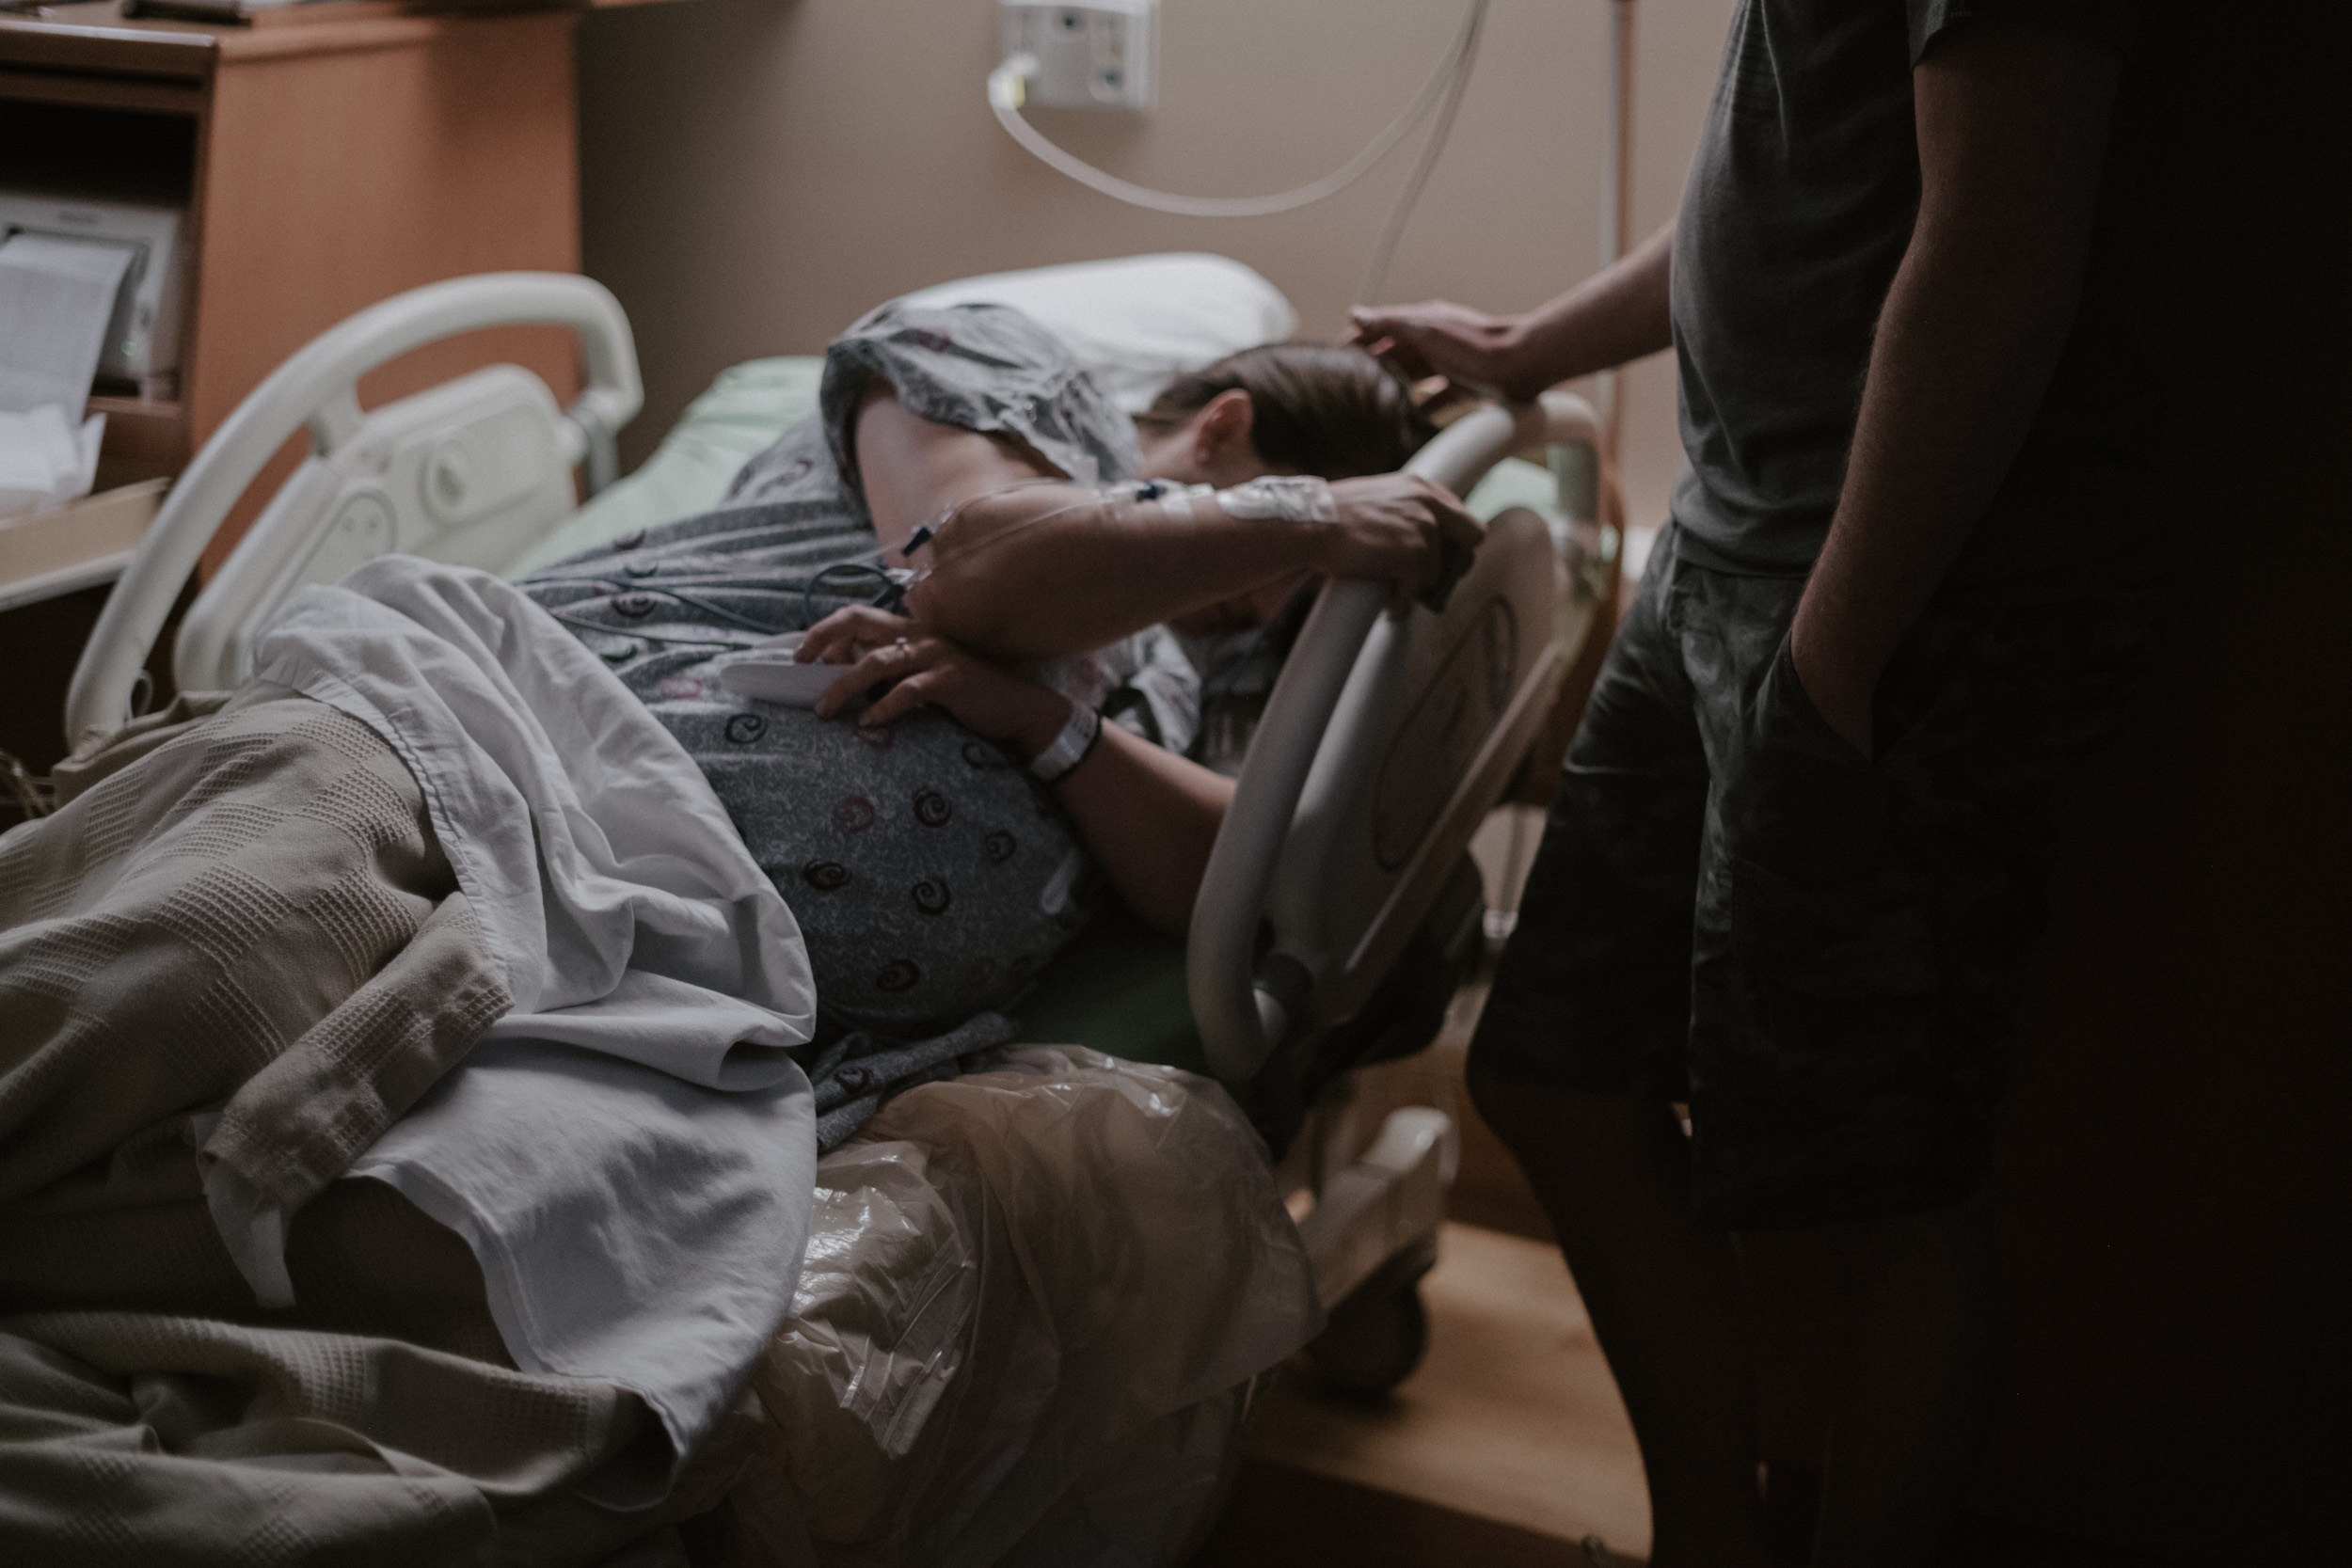 dad standing next to mom in labor and delivery bed